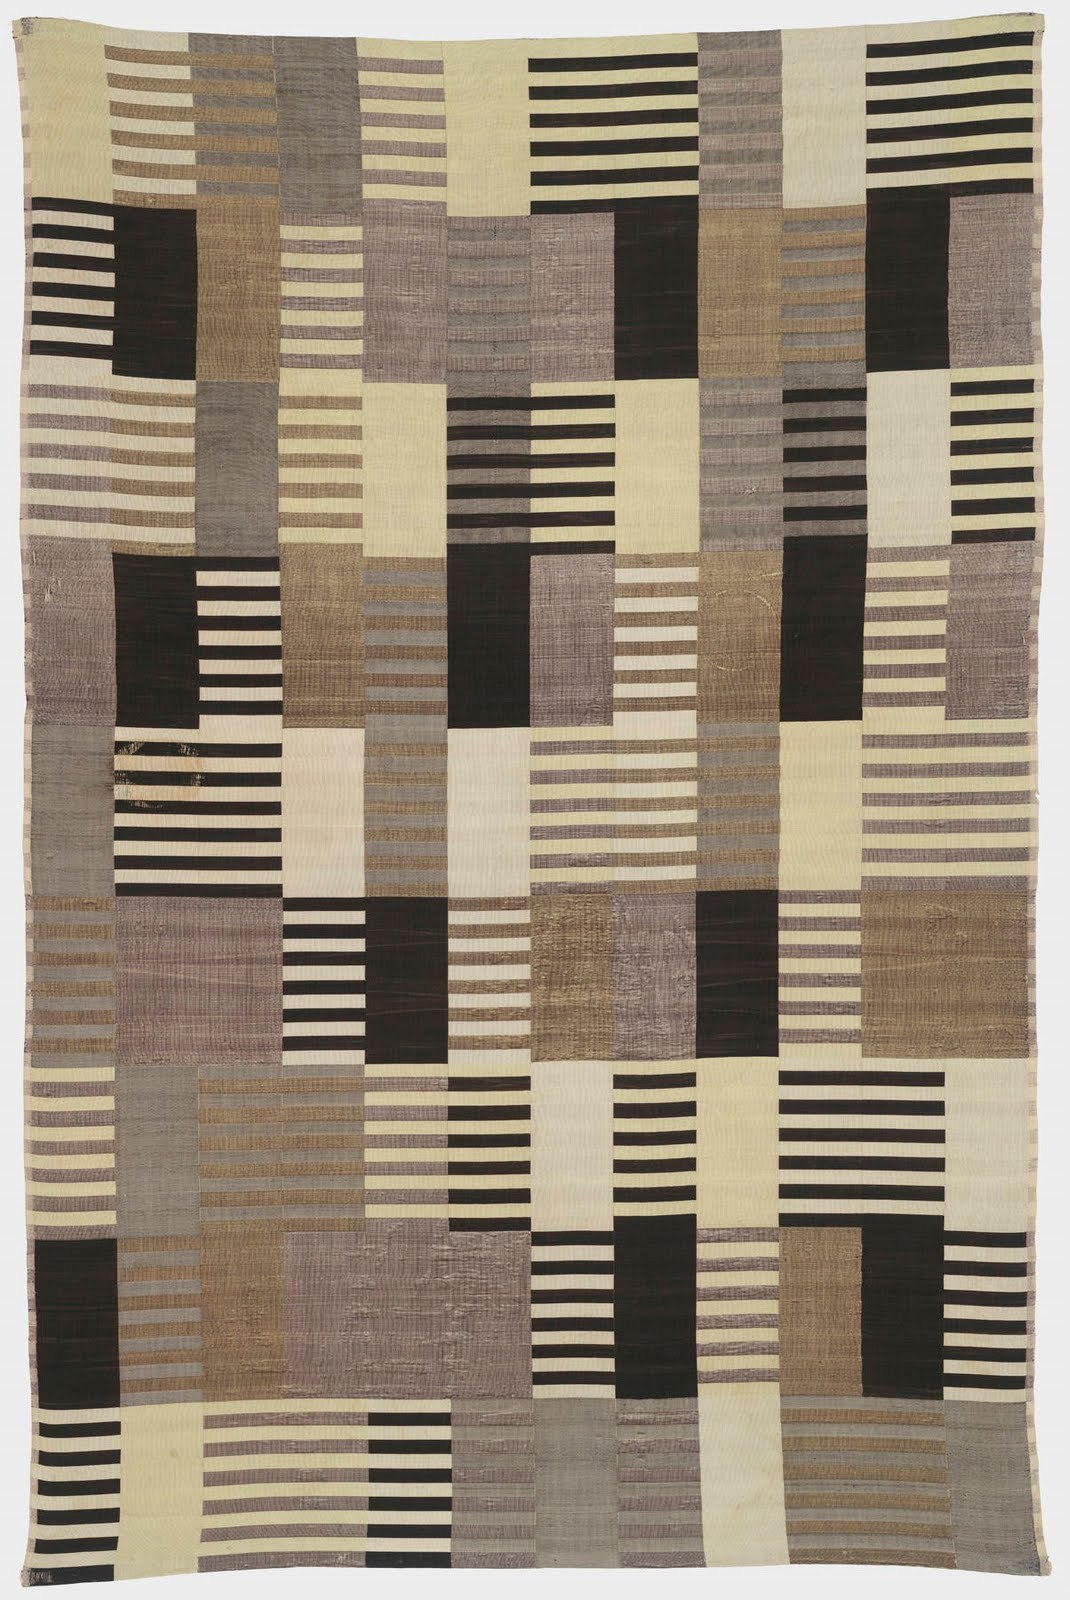 ANNI ALBERS WALL HANGING, silk, 1926 (©2007 The Josef and Anni Albers Foundation / Artists Rights Society (ARS), New York)